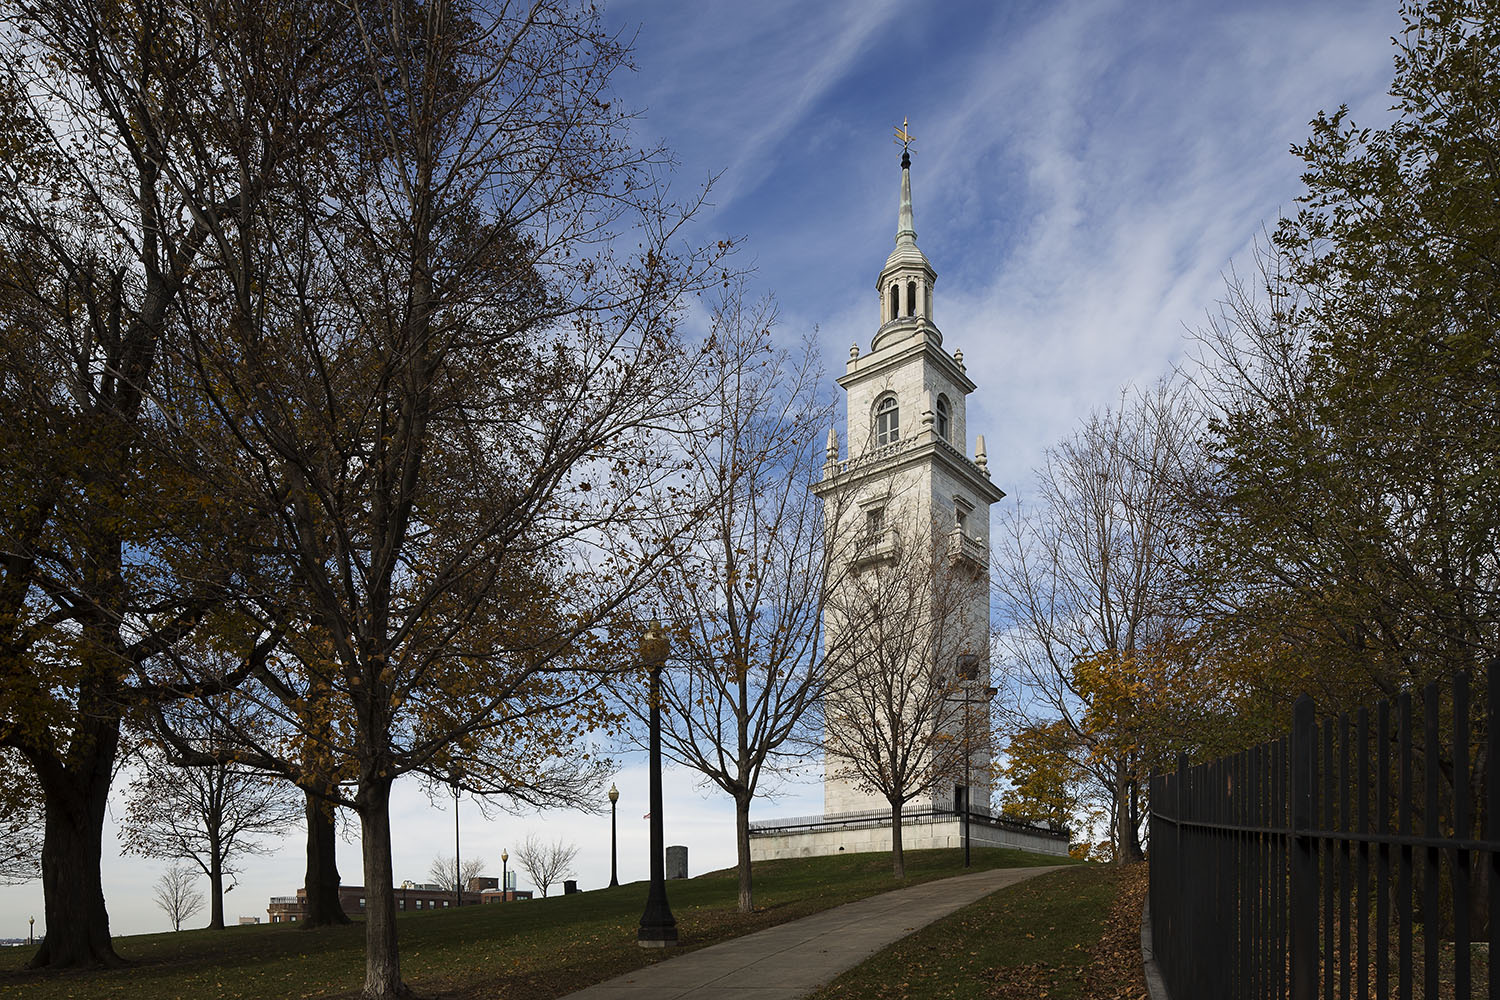 014-3772-002_Dorchester_monument-SouthBoston.jpg